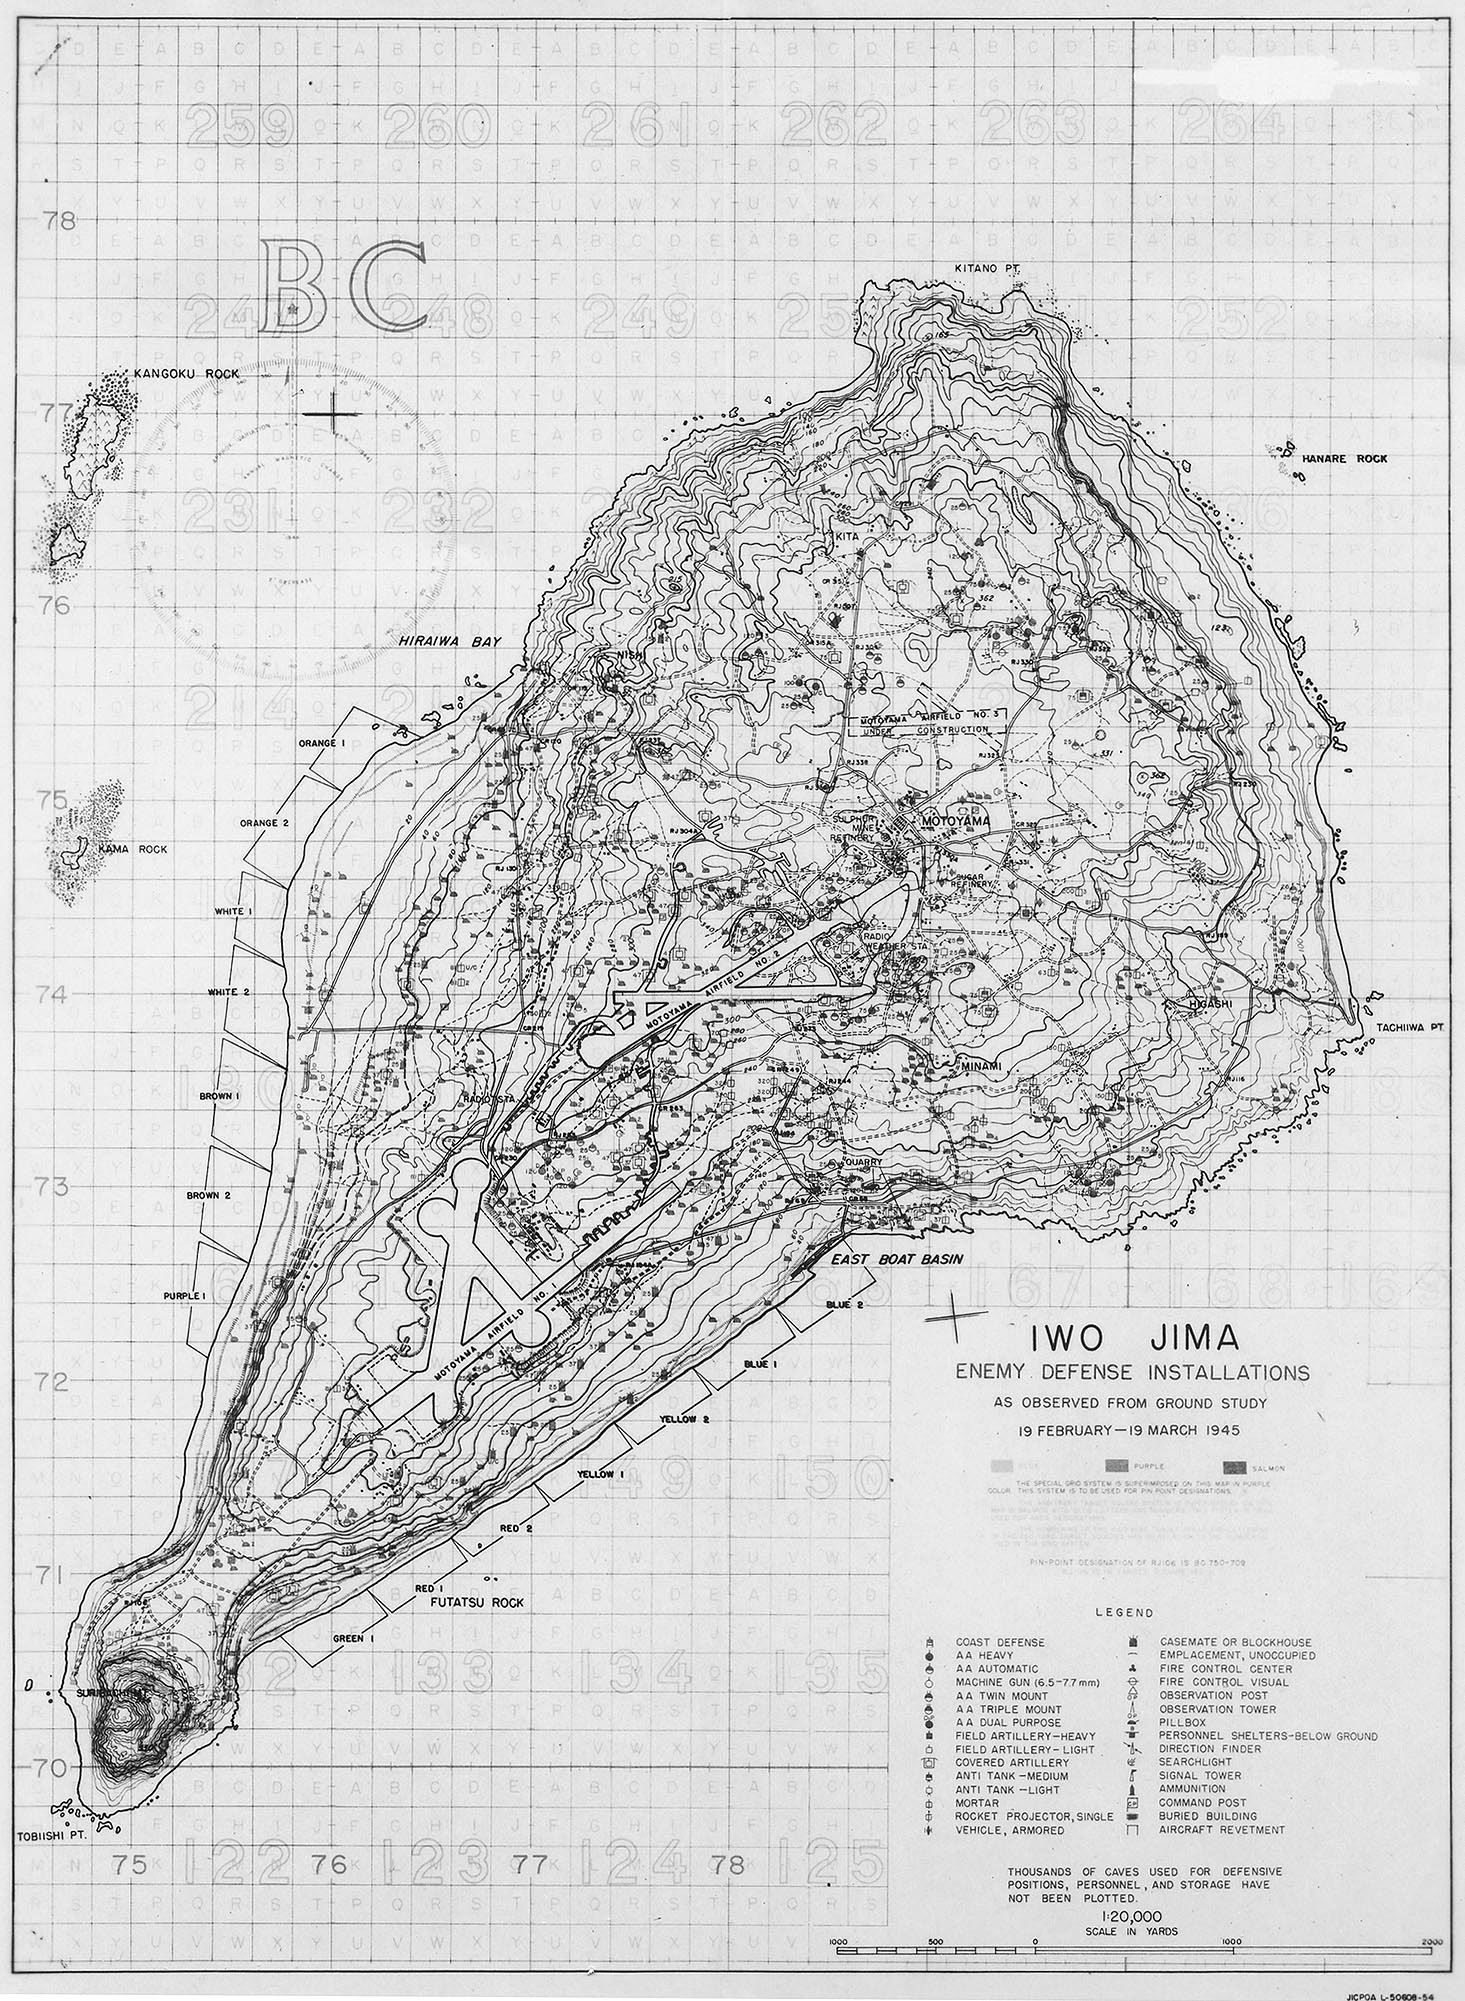 Map Of Iwo Jima Showing Japanese Defensive Positions Noted